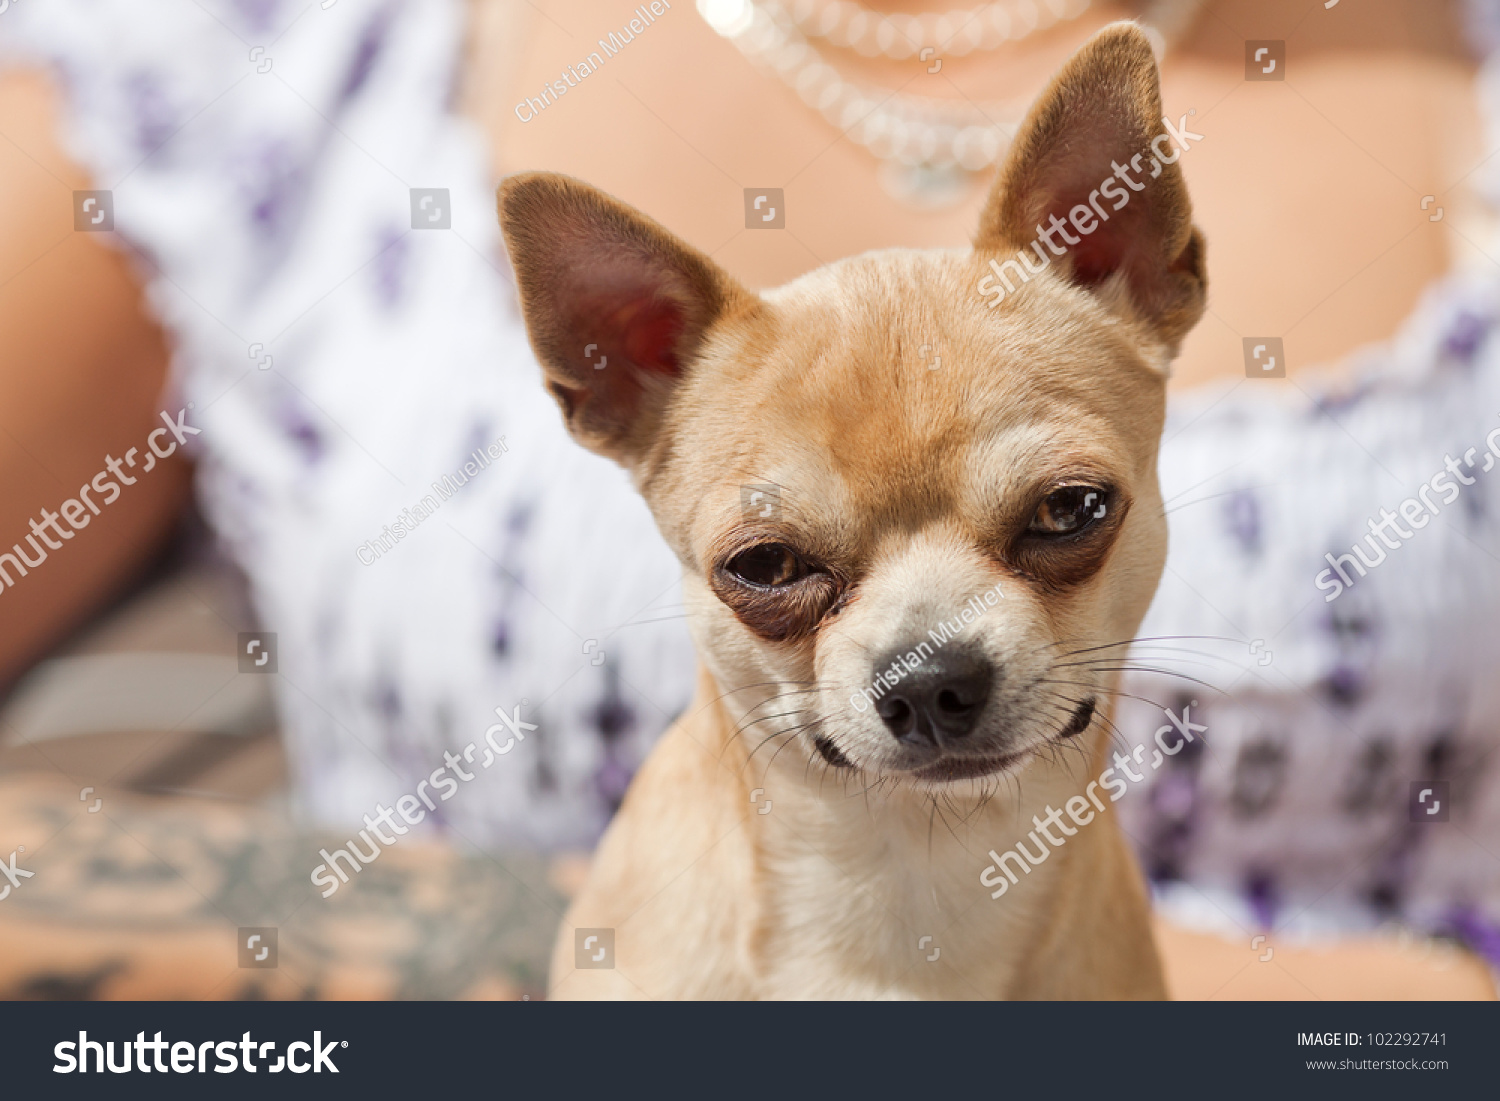 Picture Funny Looking Dog Blinking Eyes Stock Photo - Dogs looking funny with toys